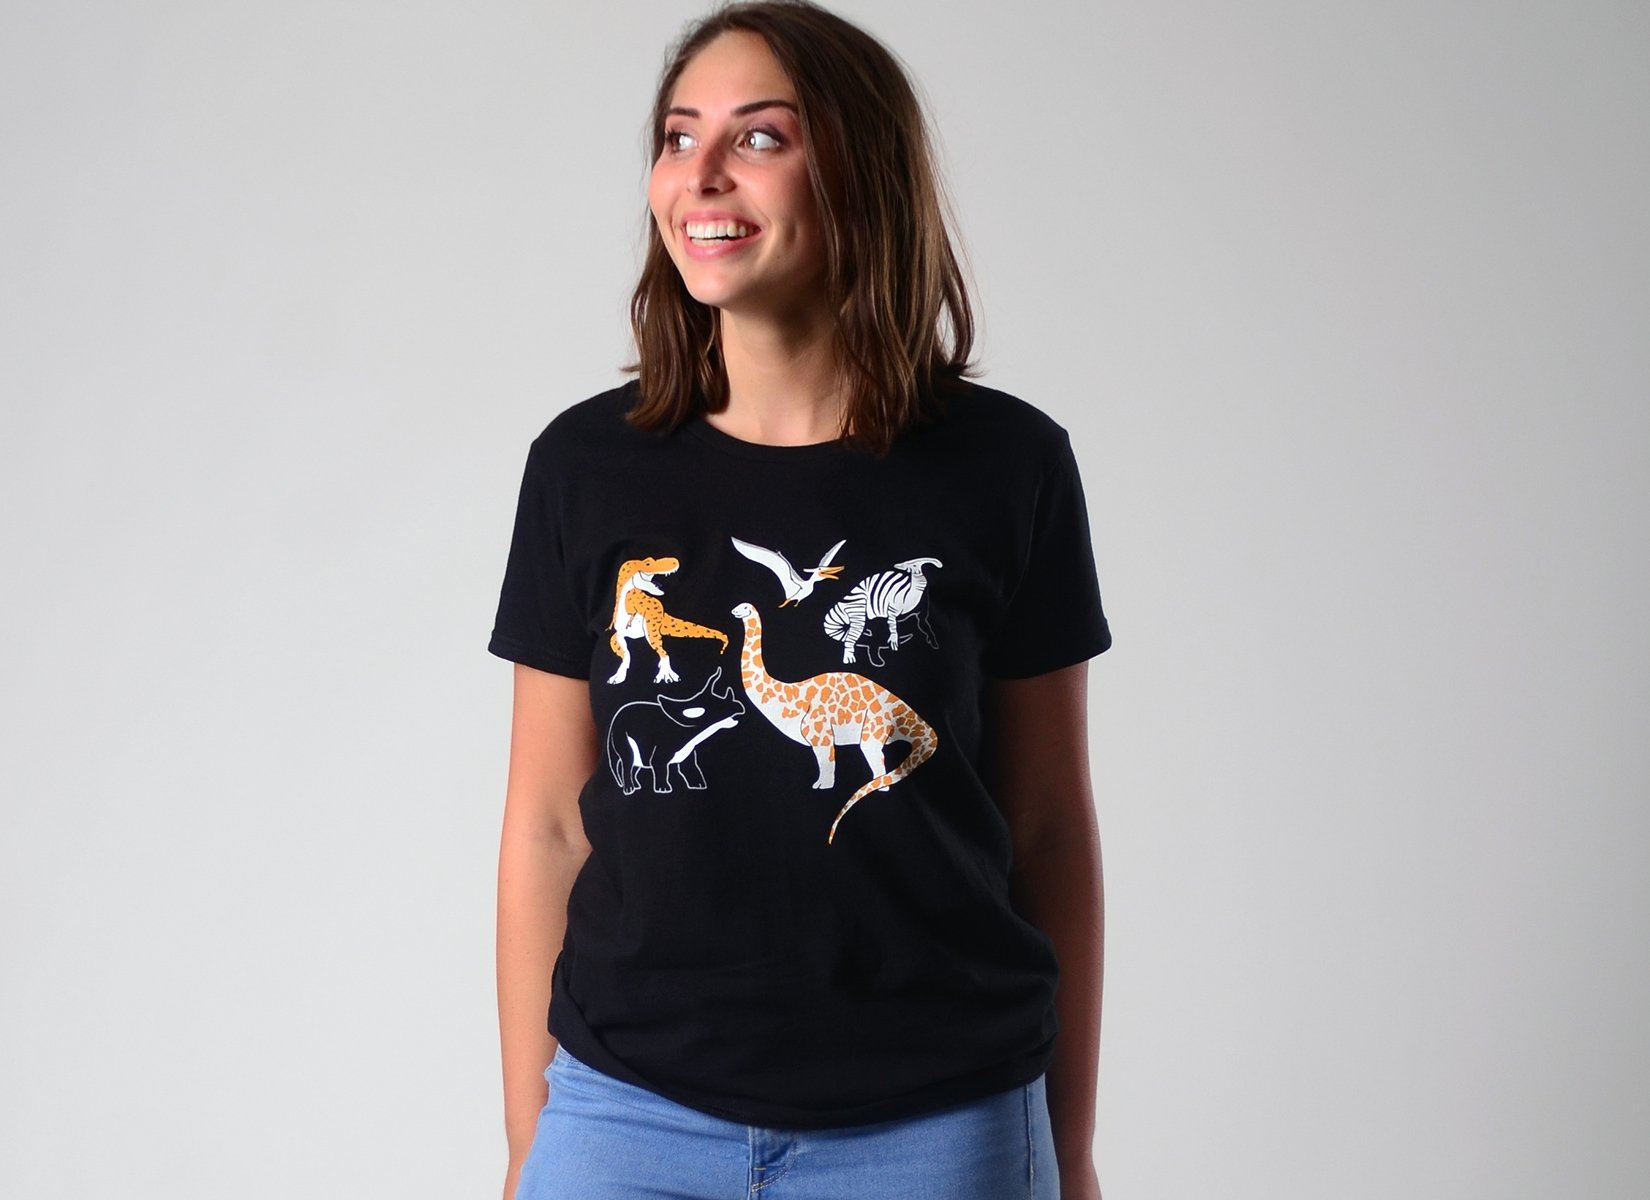 Dino Prints on Womens T-Shirt